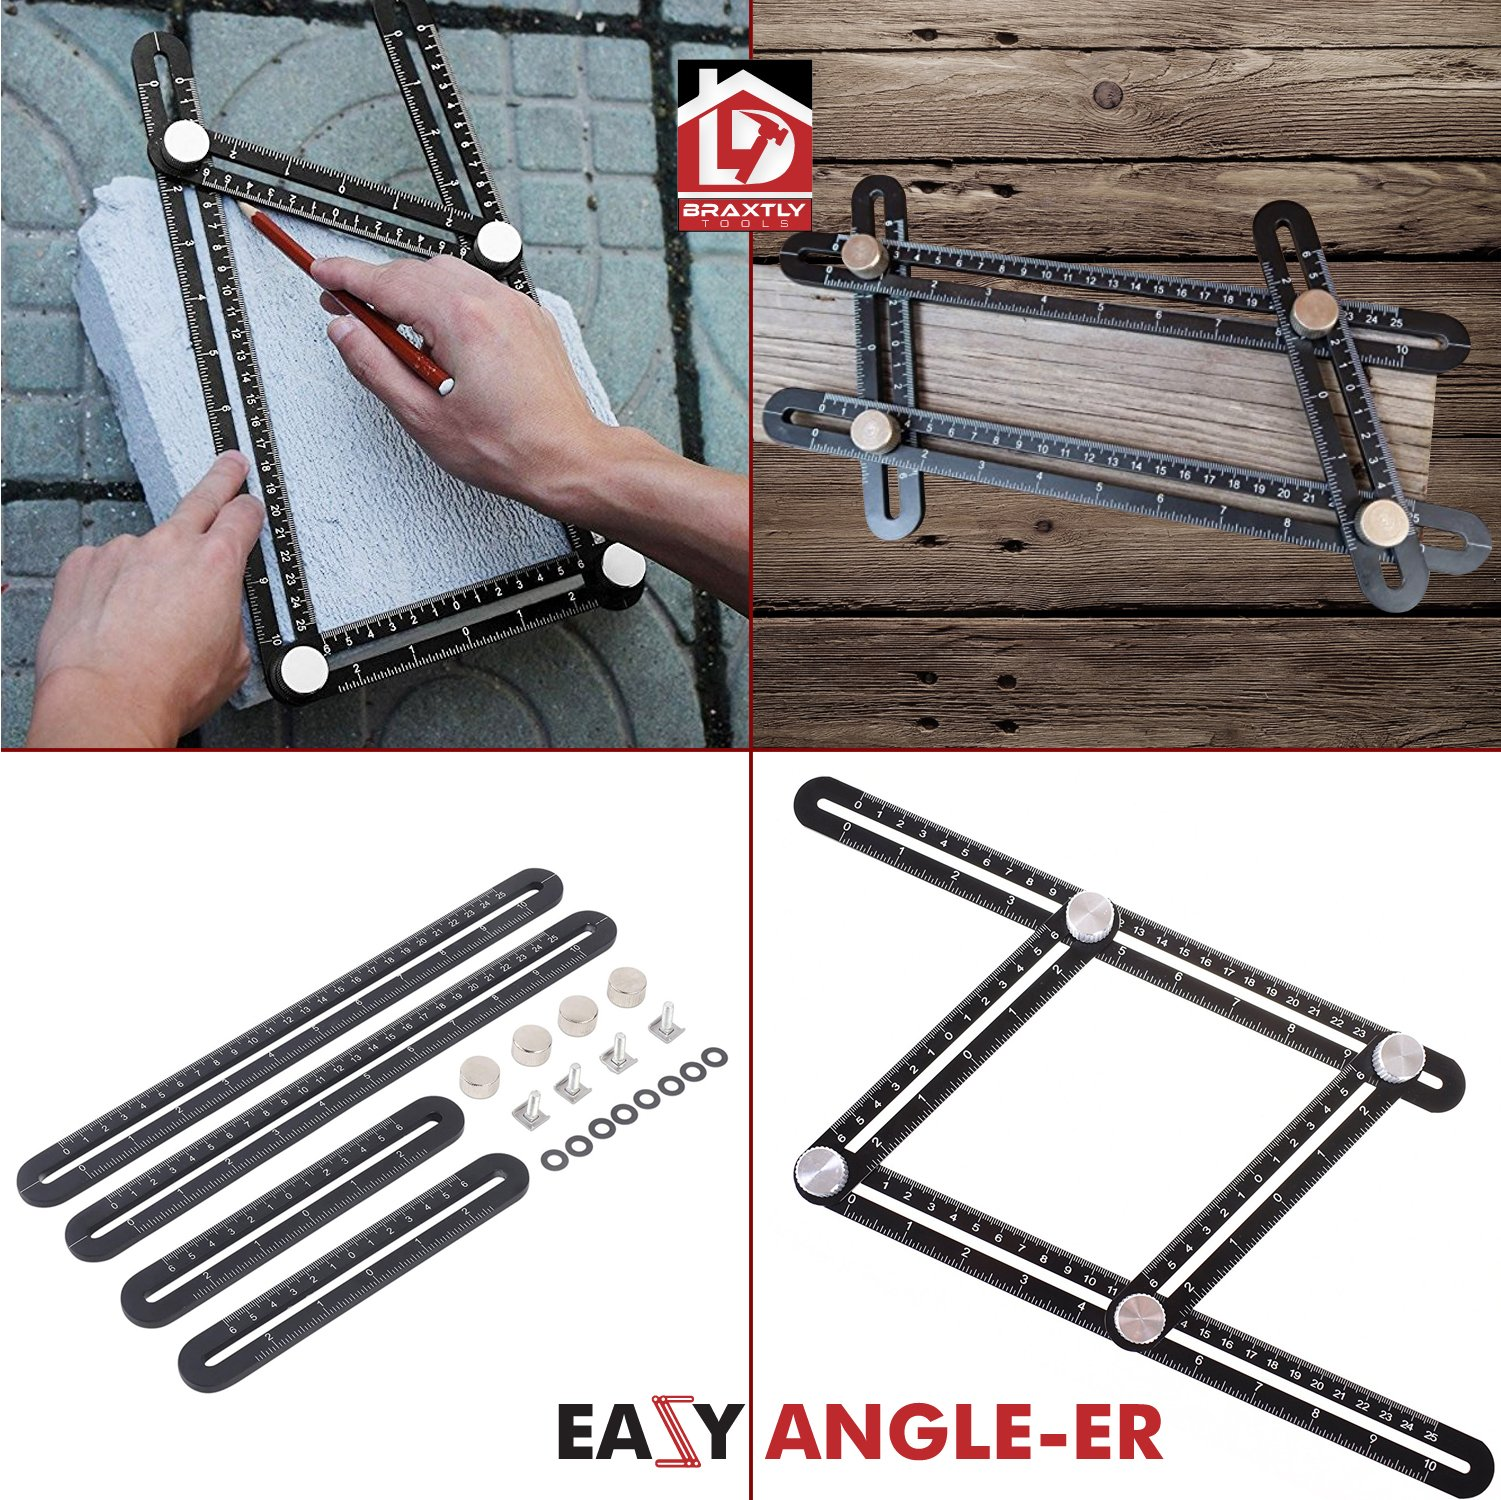 Braxtly Tools EASY ANGLE-ER HEAVY DUTY Template Tool - Ultimate Multi Angle Ruler - For Measuring Angles - Made of Premium Metal Alloy- Adjustable Knobs for Precise Measurement- w/Instruction Manual by Braxtly Tools (Image #6)